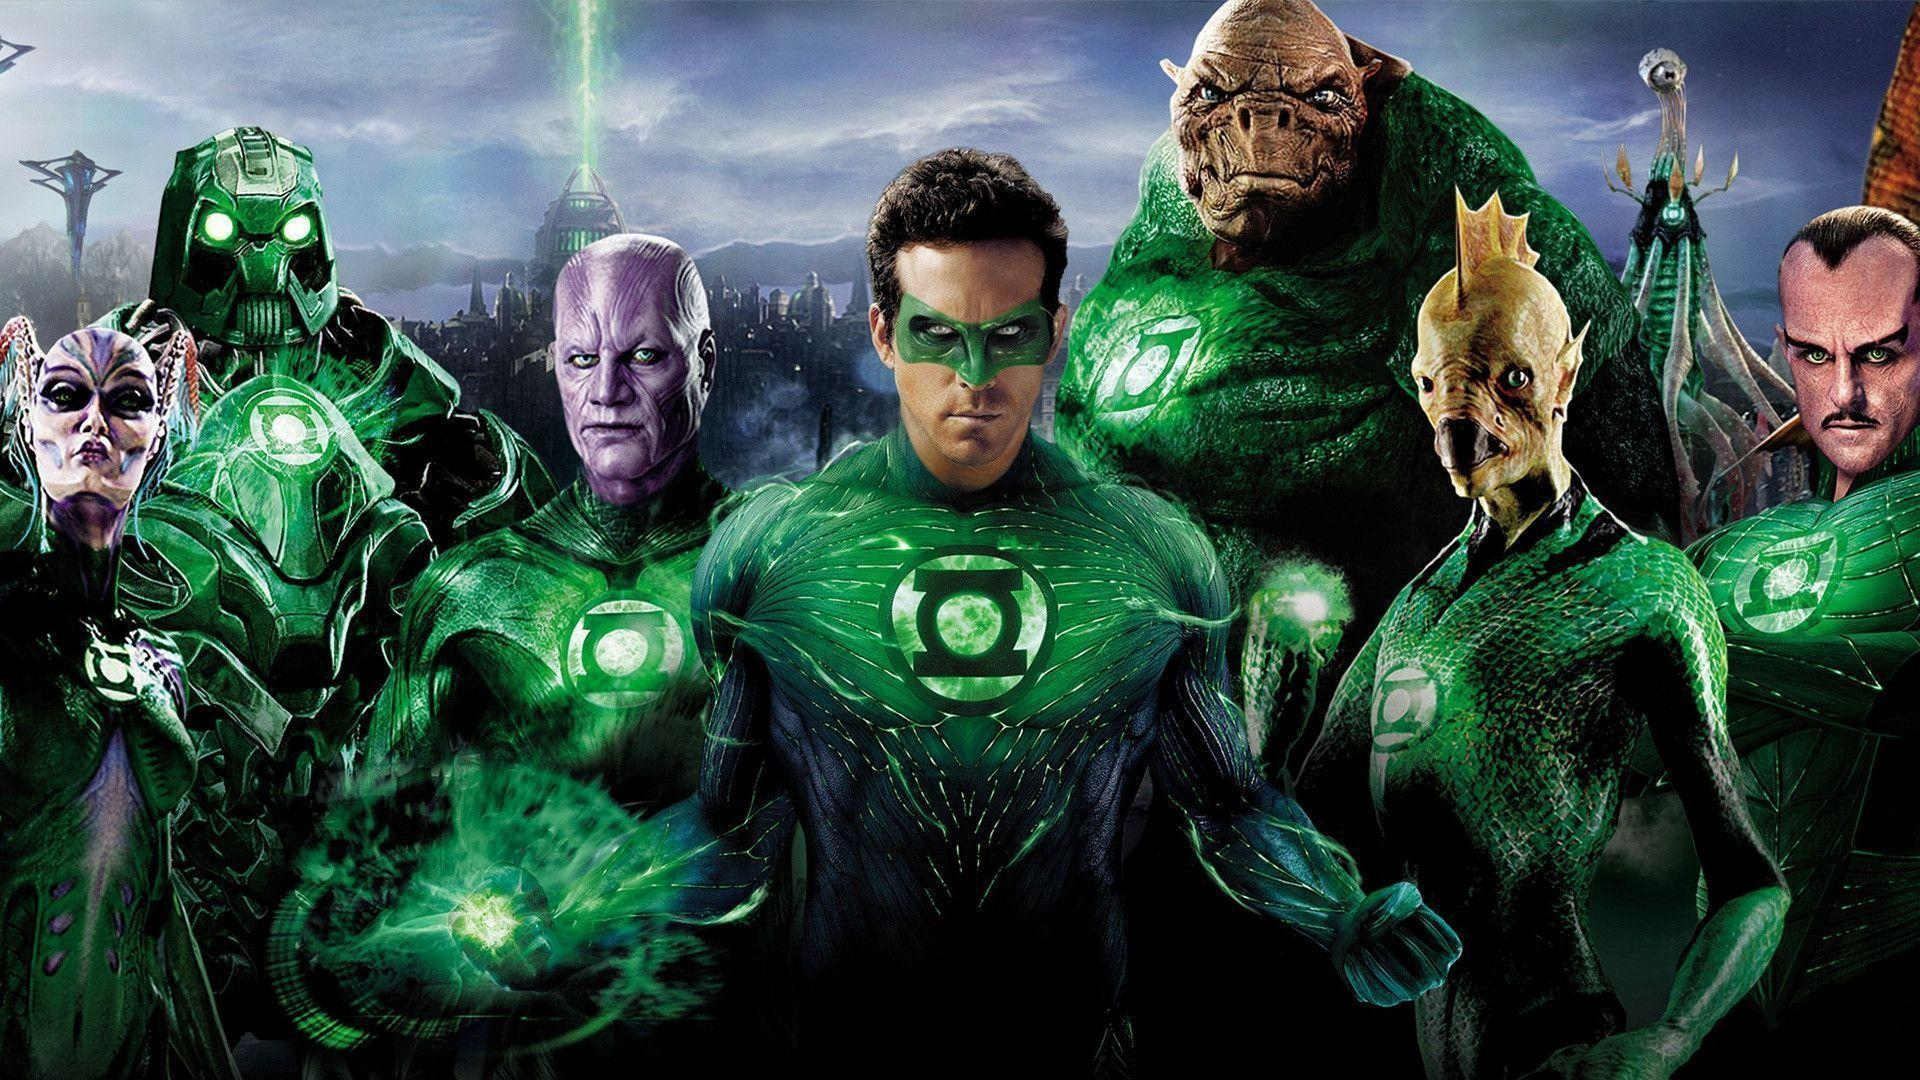 Green Lantern Superheroes Wallpapers